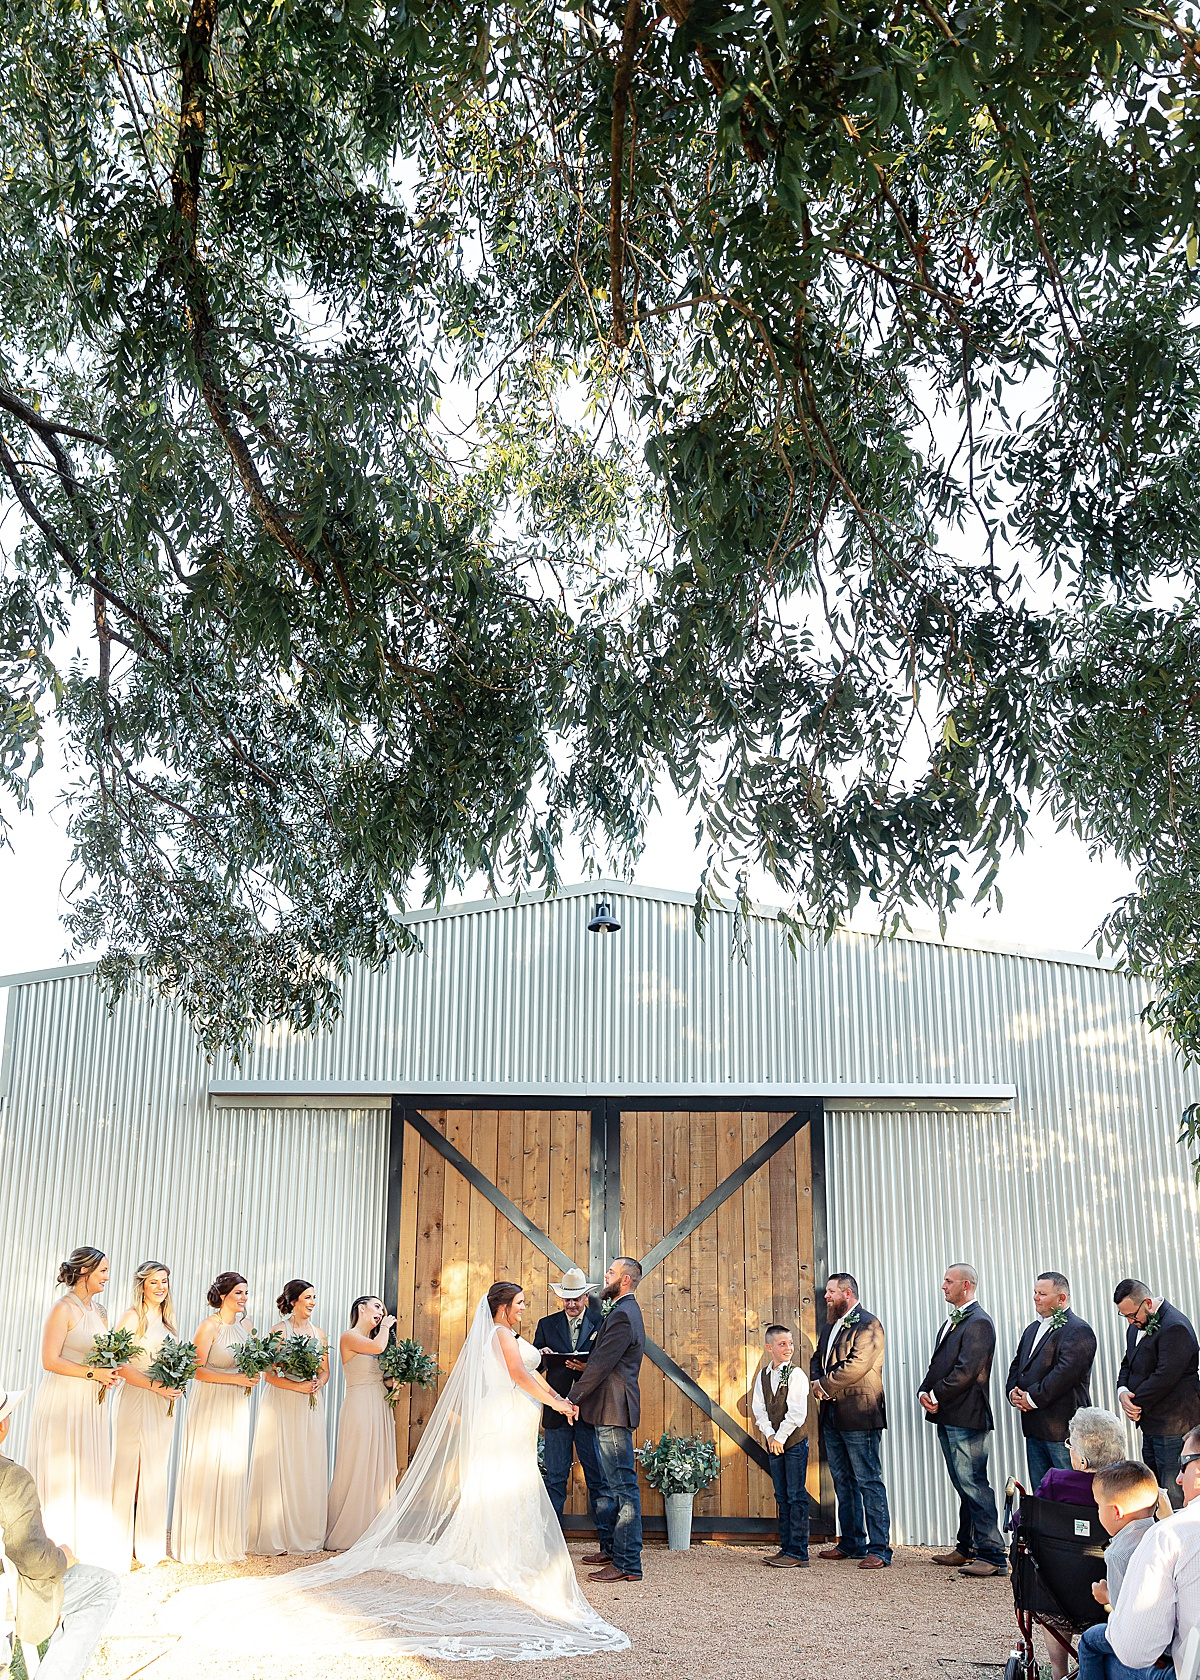 Rustic-Texas-Wedding-Hollow-Creek-Ranch-Carly-Barton-Photography_0120.jpg